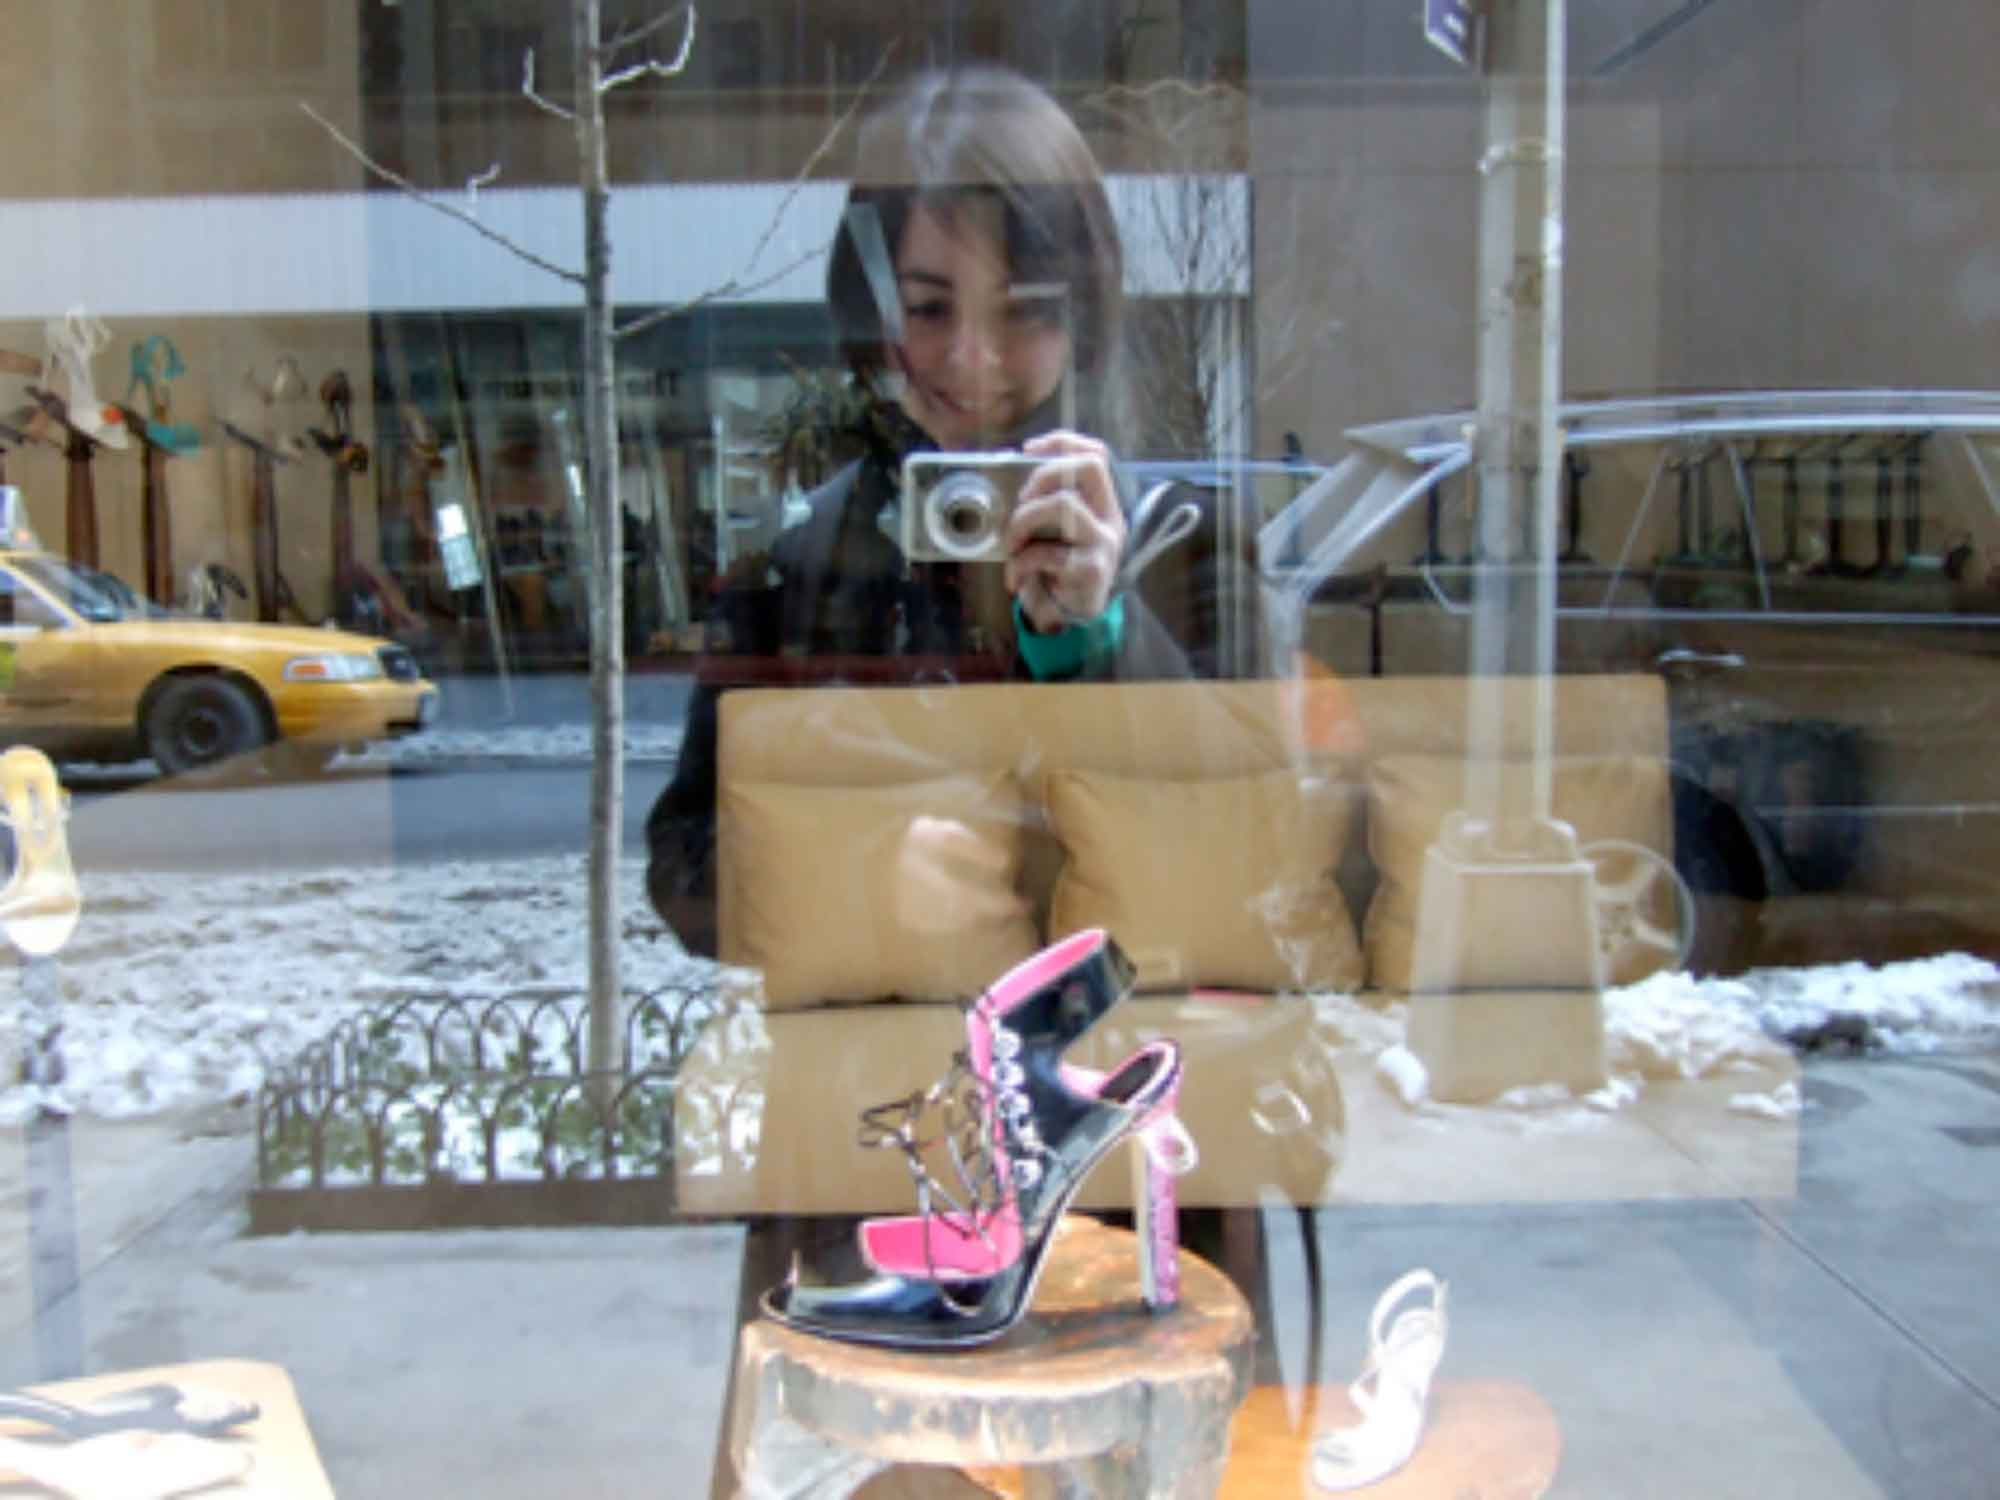 Photograph of the Breda shoe, New York City, 2007.